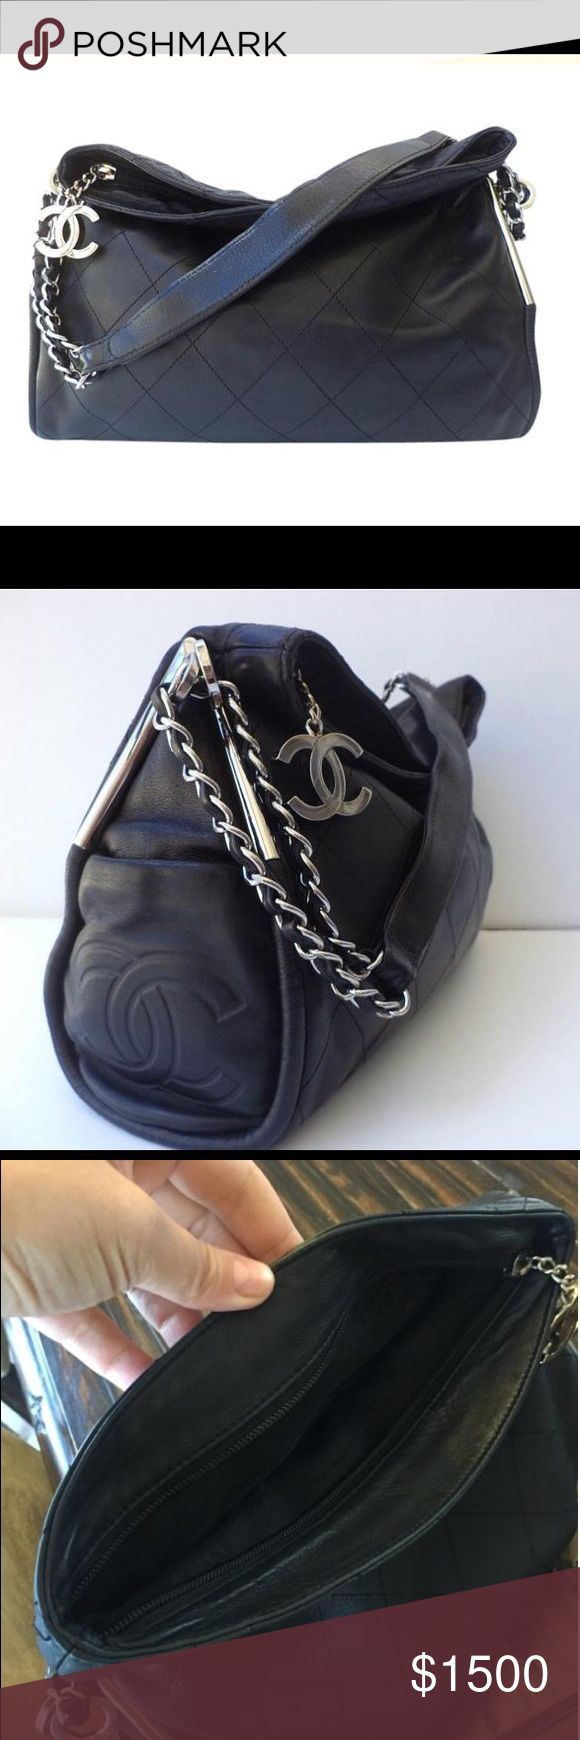 Chanel shoulder bag Beautiful Chanel shoulder bag in good condition preowned, no stains, no odors, no scratches to the leather, sorry no dust bag available or box. CHANEL Bags Shoulder Bags